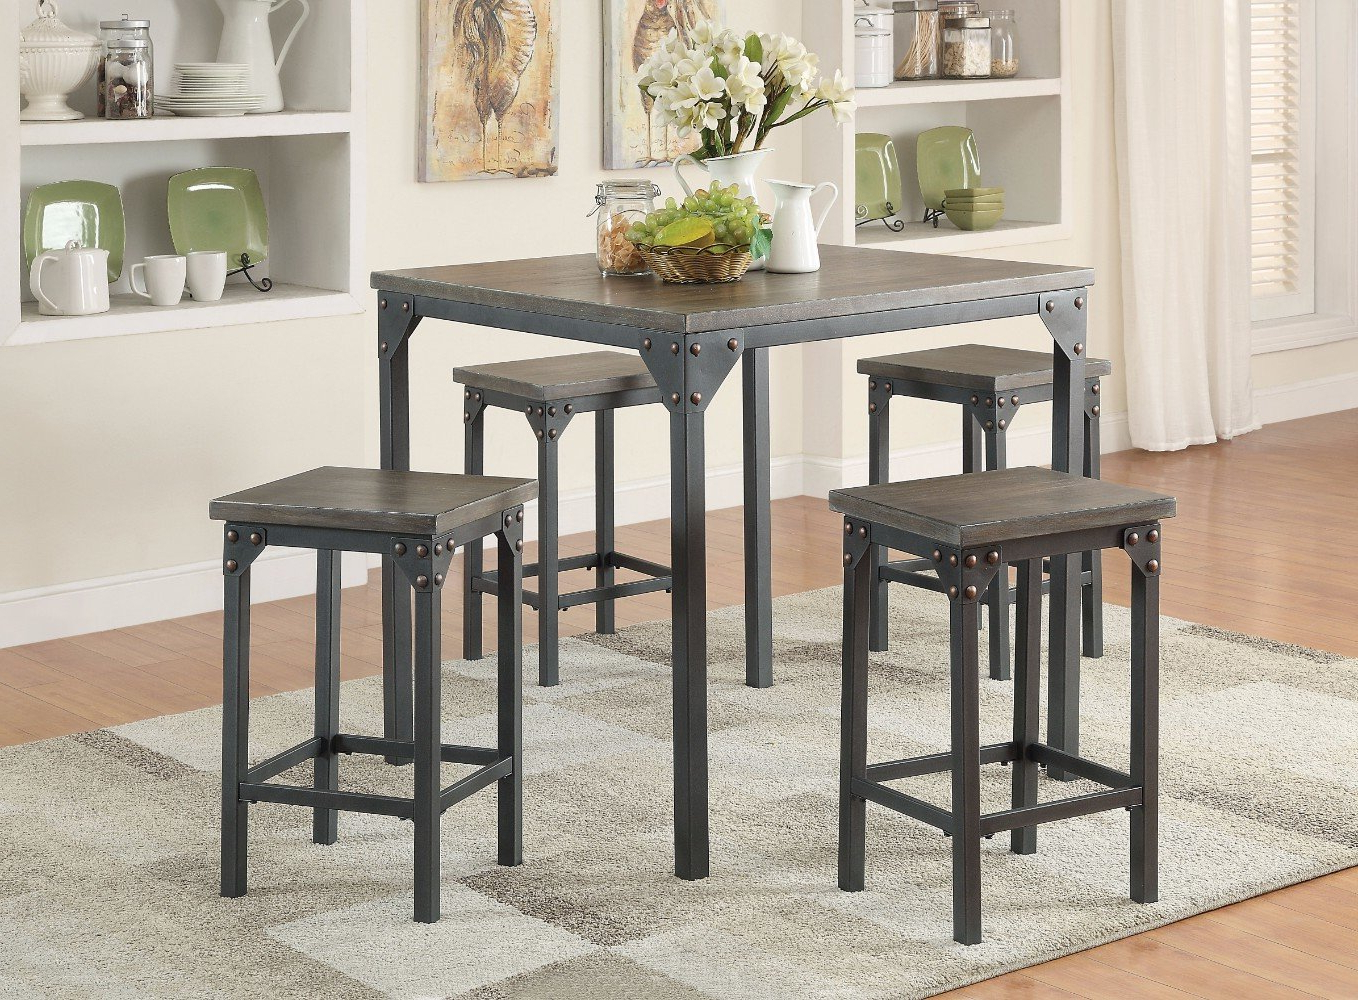 Wayfair Pertaining To Nutter 3 Piece Dining Sets (View 15 of 25)